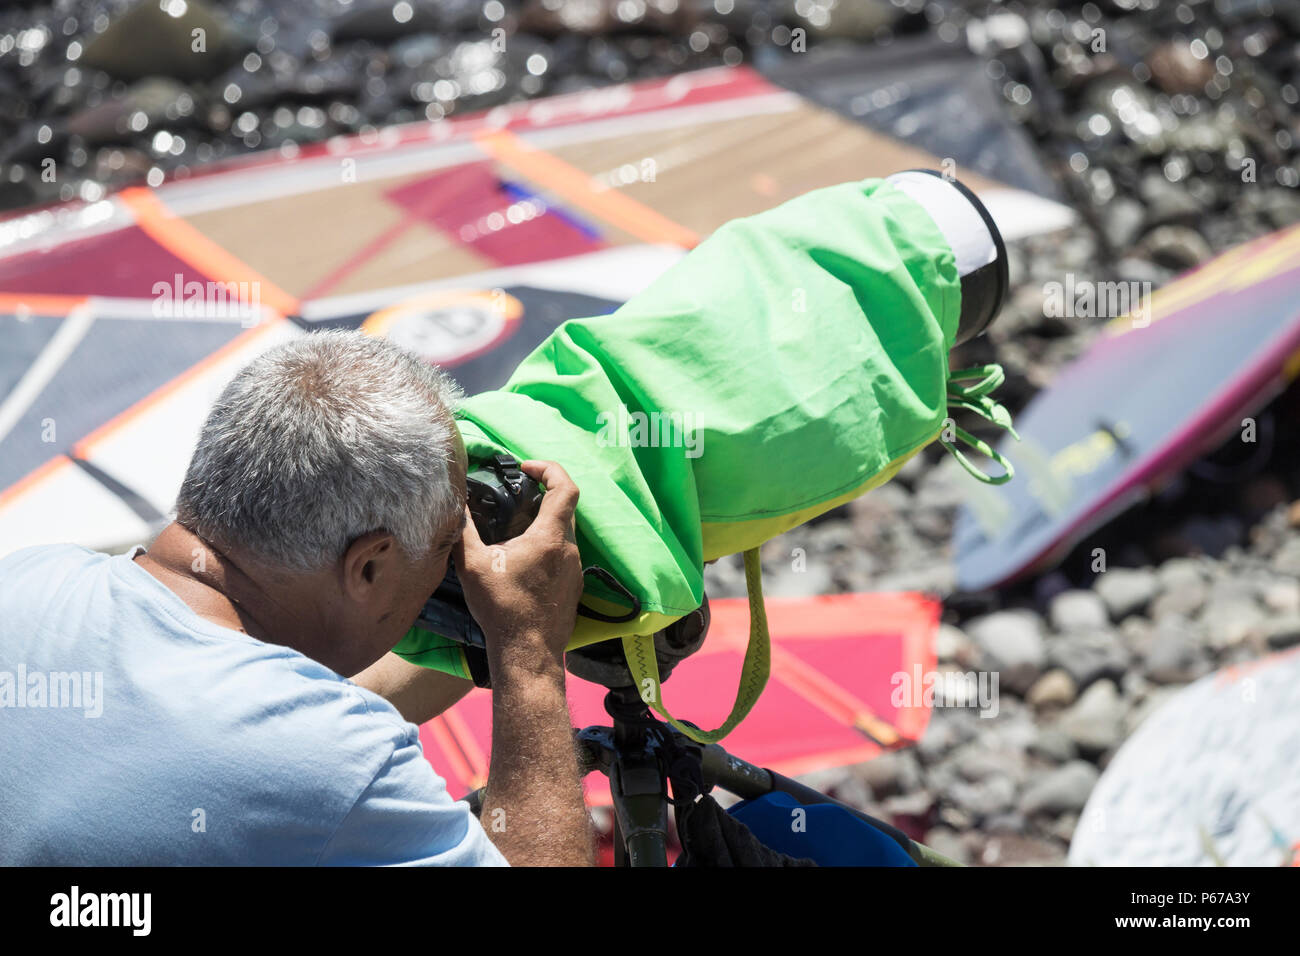 Sport photographer protecting camera and lens from sea spray - Stock Image